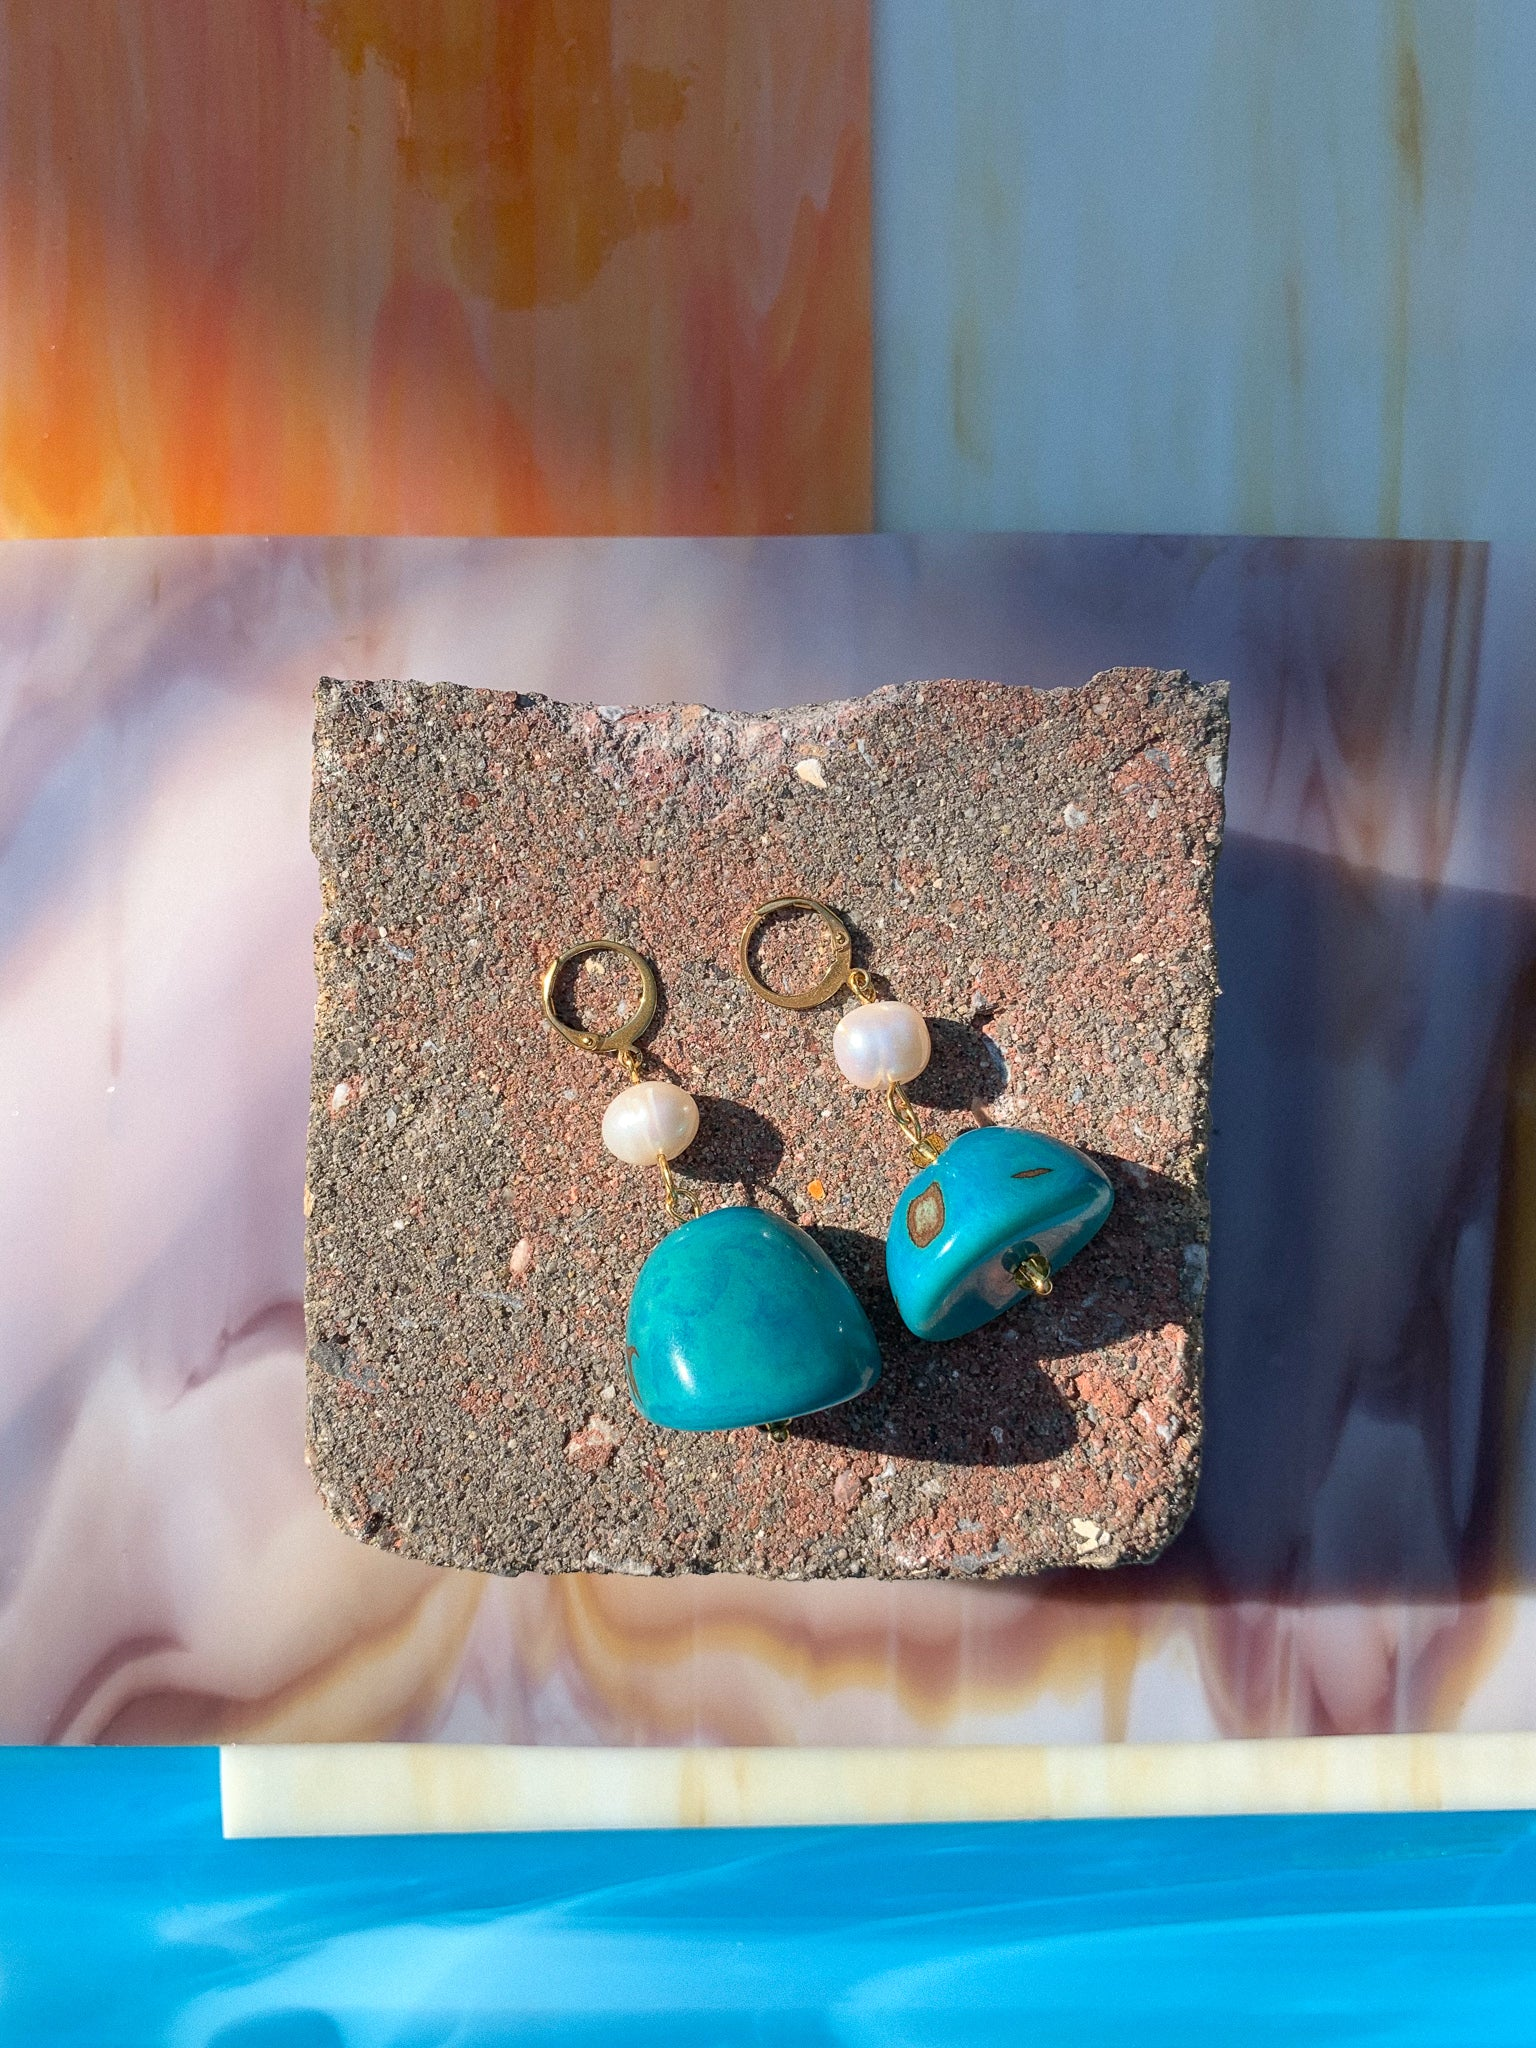 tagua nut handmade earrings in turquoise